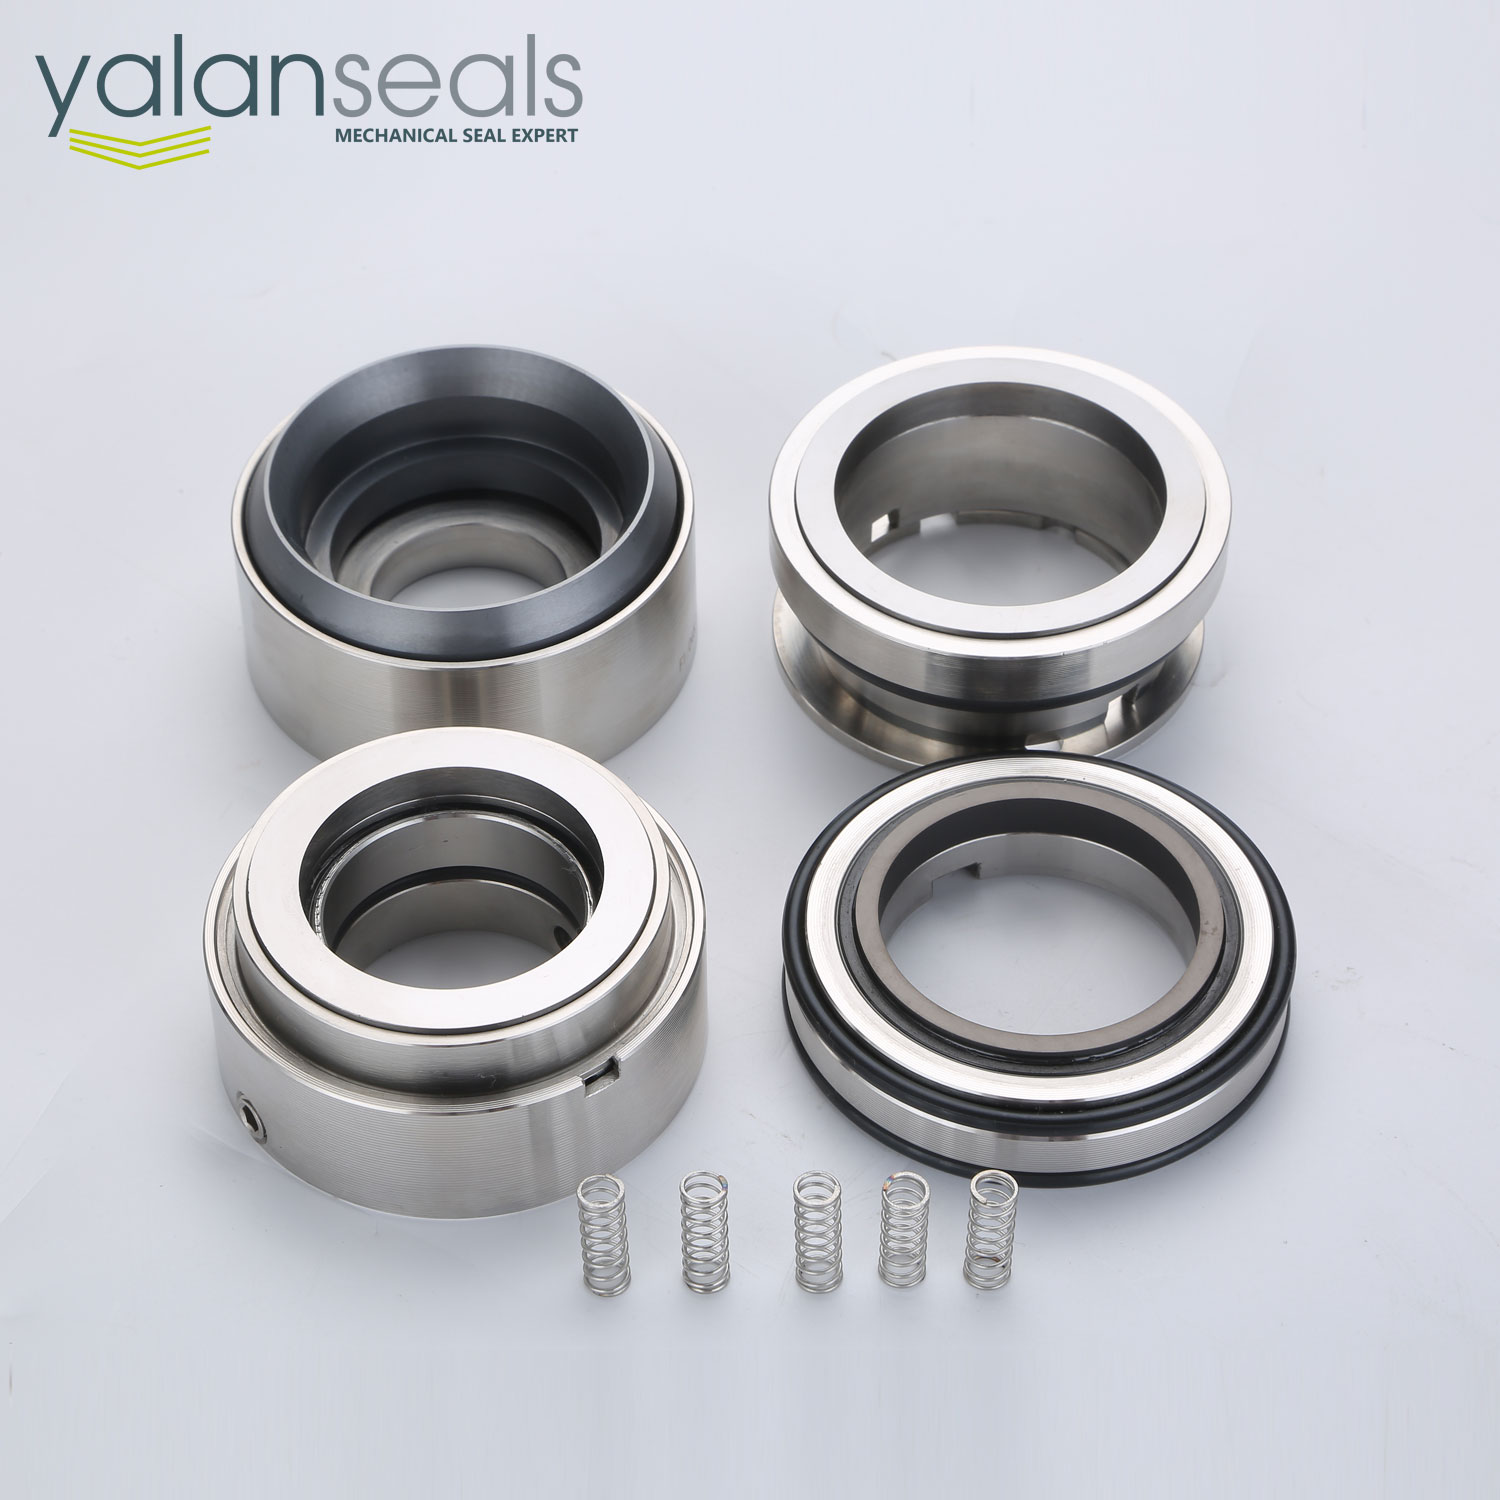 171SK-171CL Double Mechanical Seal